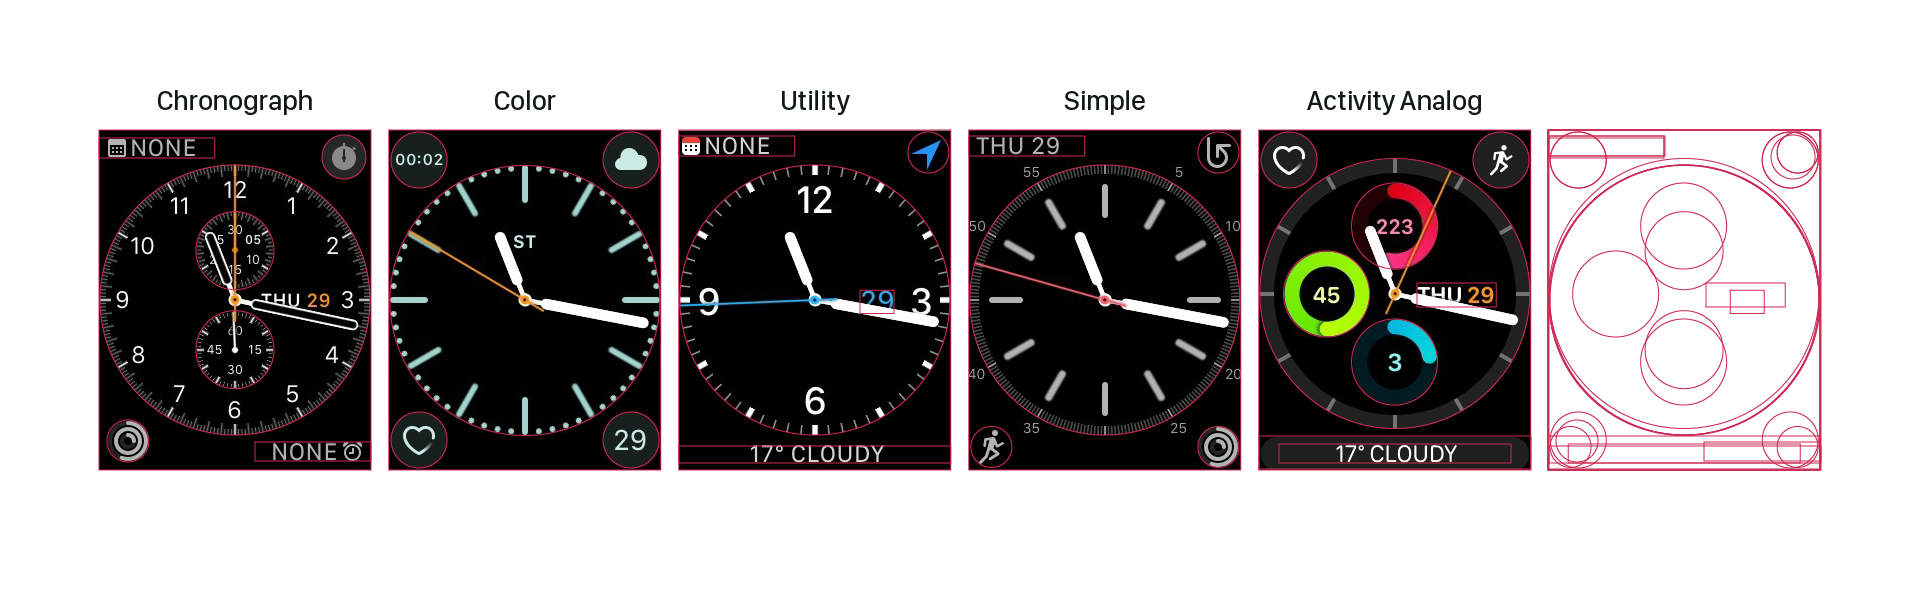 WatchOS analog grid